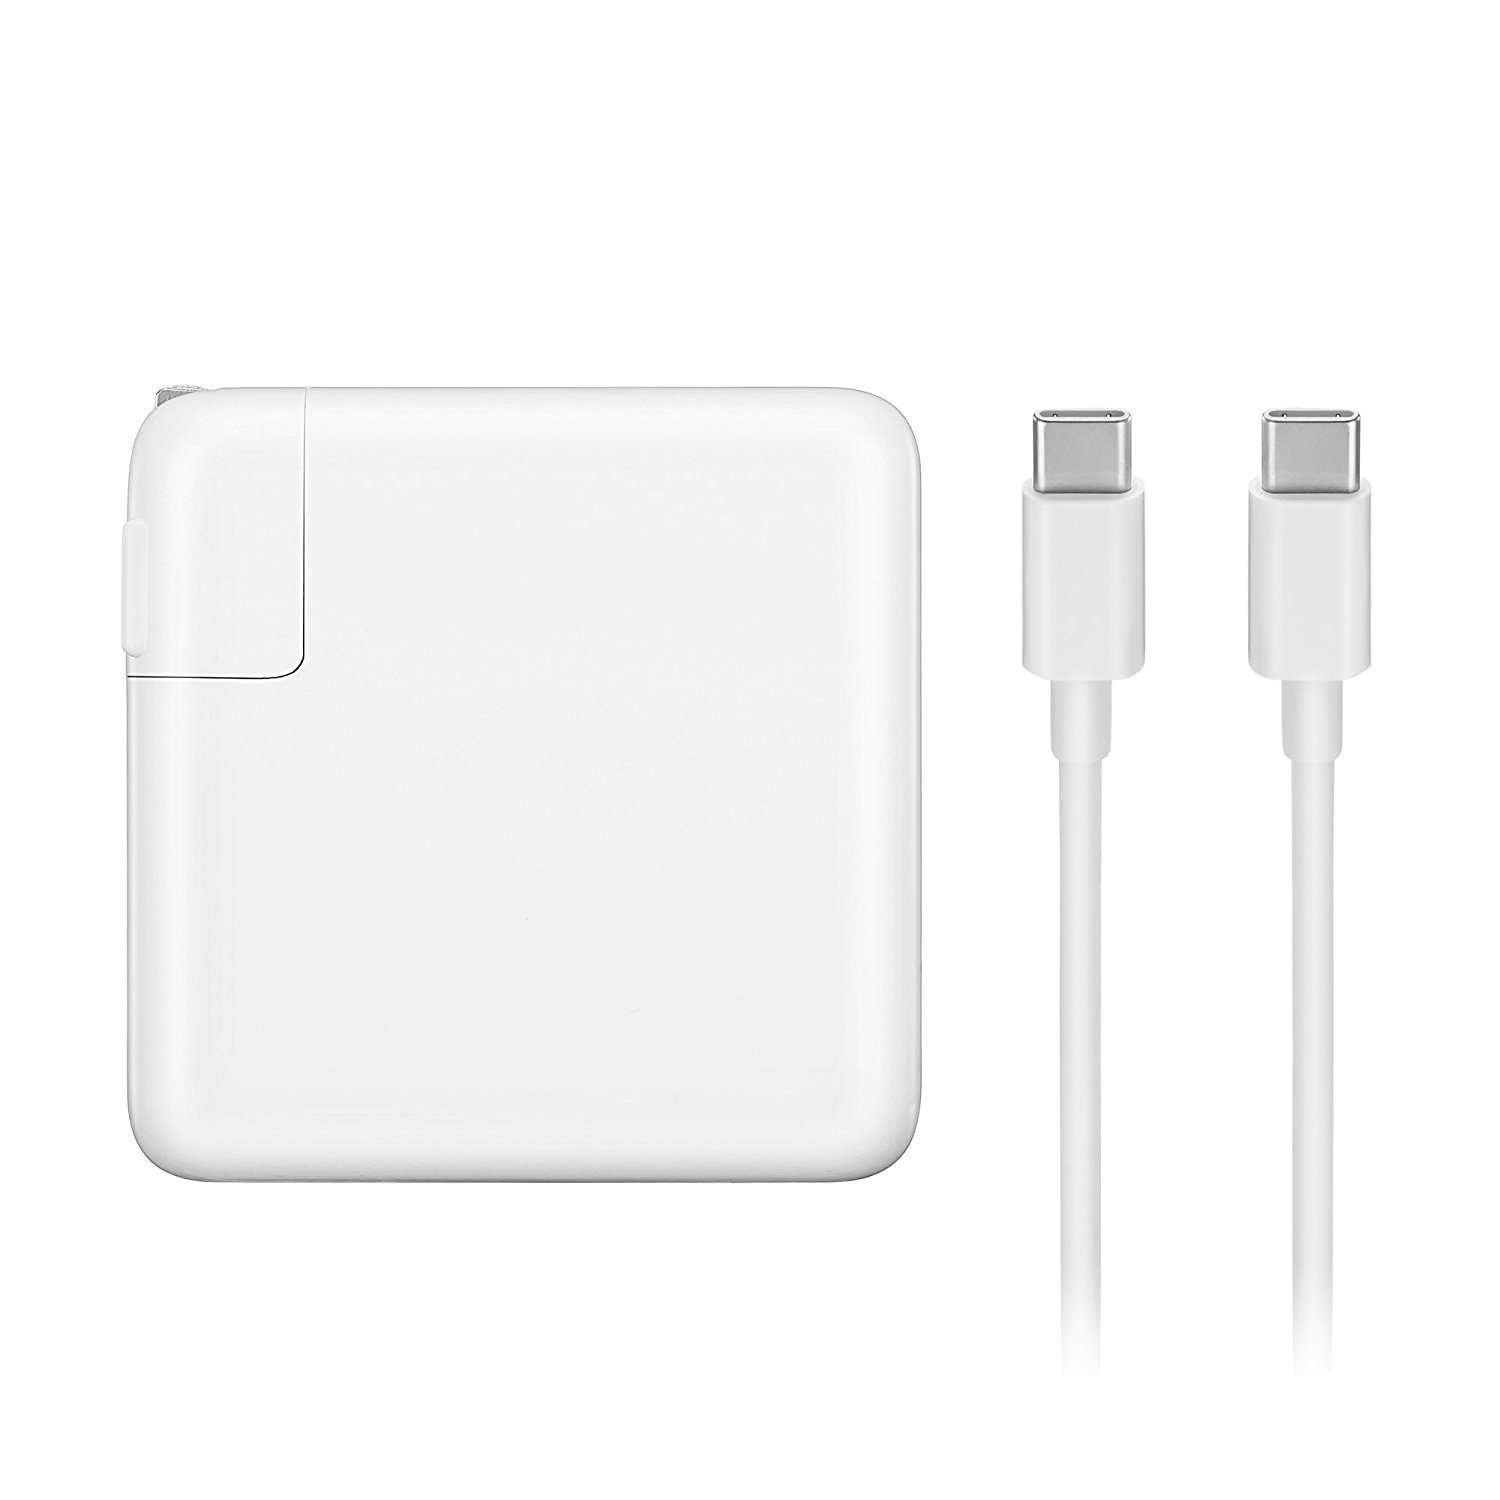 87W USB-C Power Adapter Charger USB-C to USB-C Charge Cable